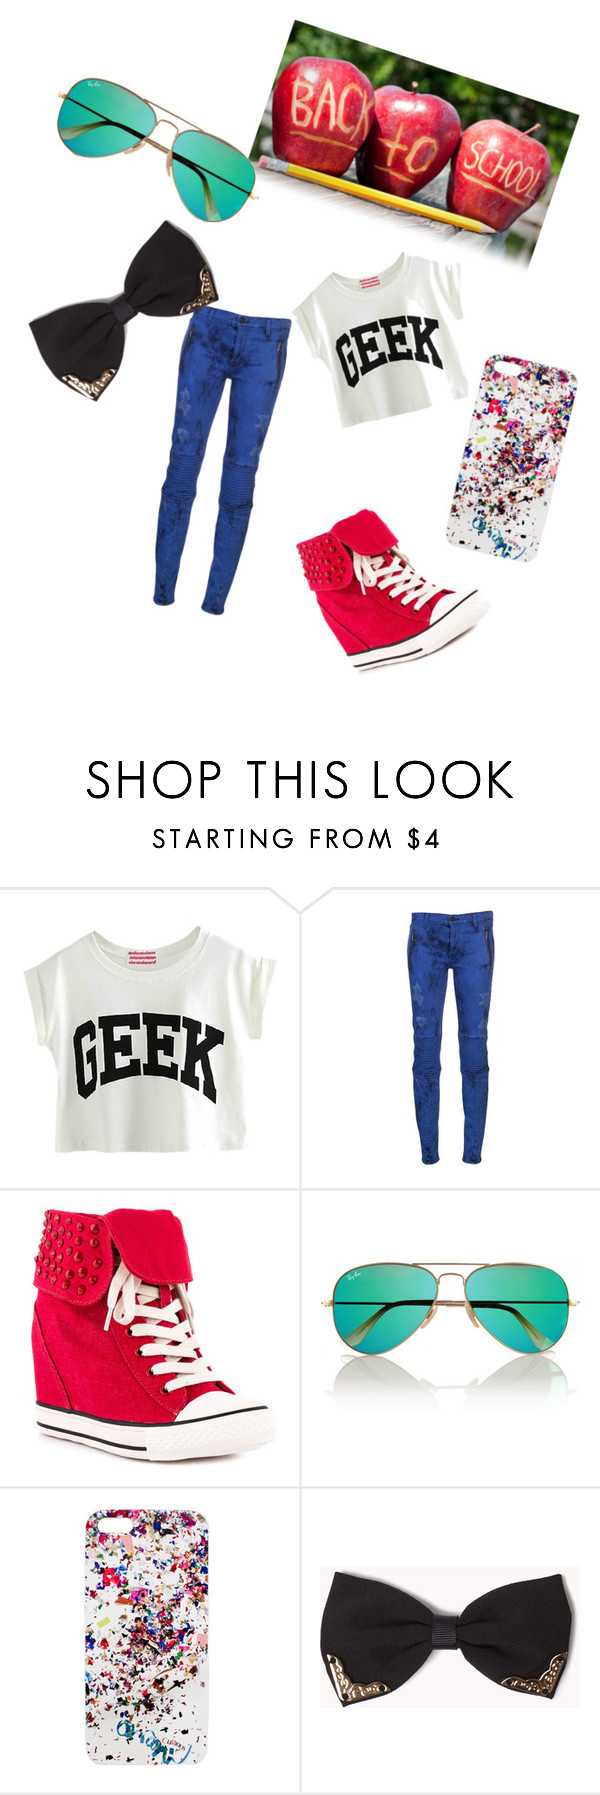 """""""Back to school"""" by harry-potter-style ❤ liked on Polyvore featuring Rock & Candy, Ray-Ban, Cynthia Rowley and Forever 21"""